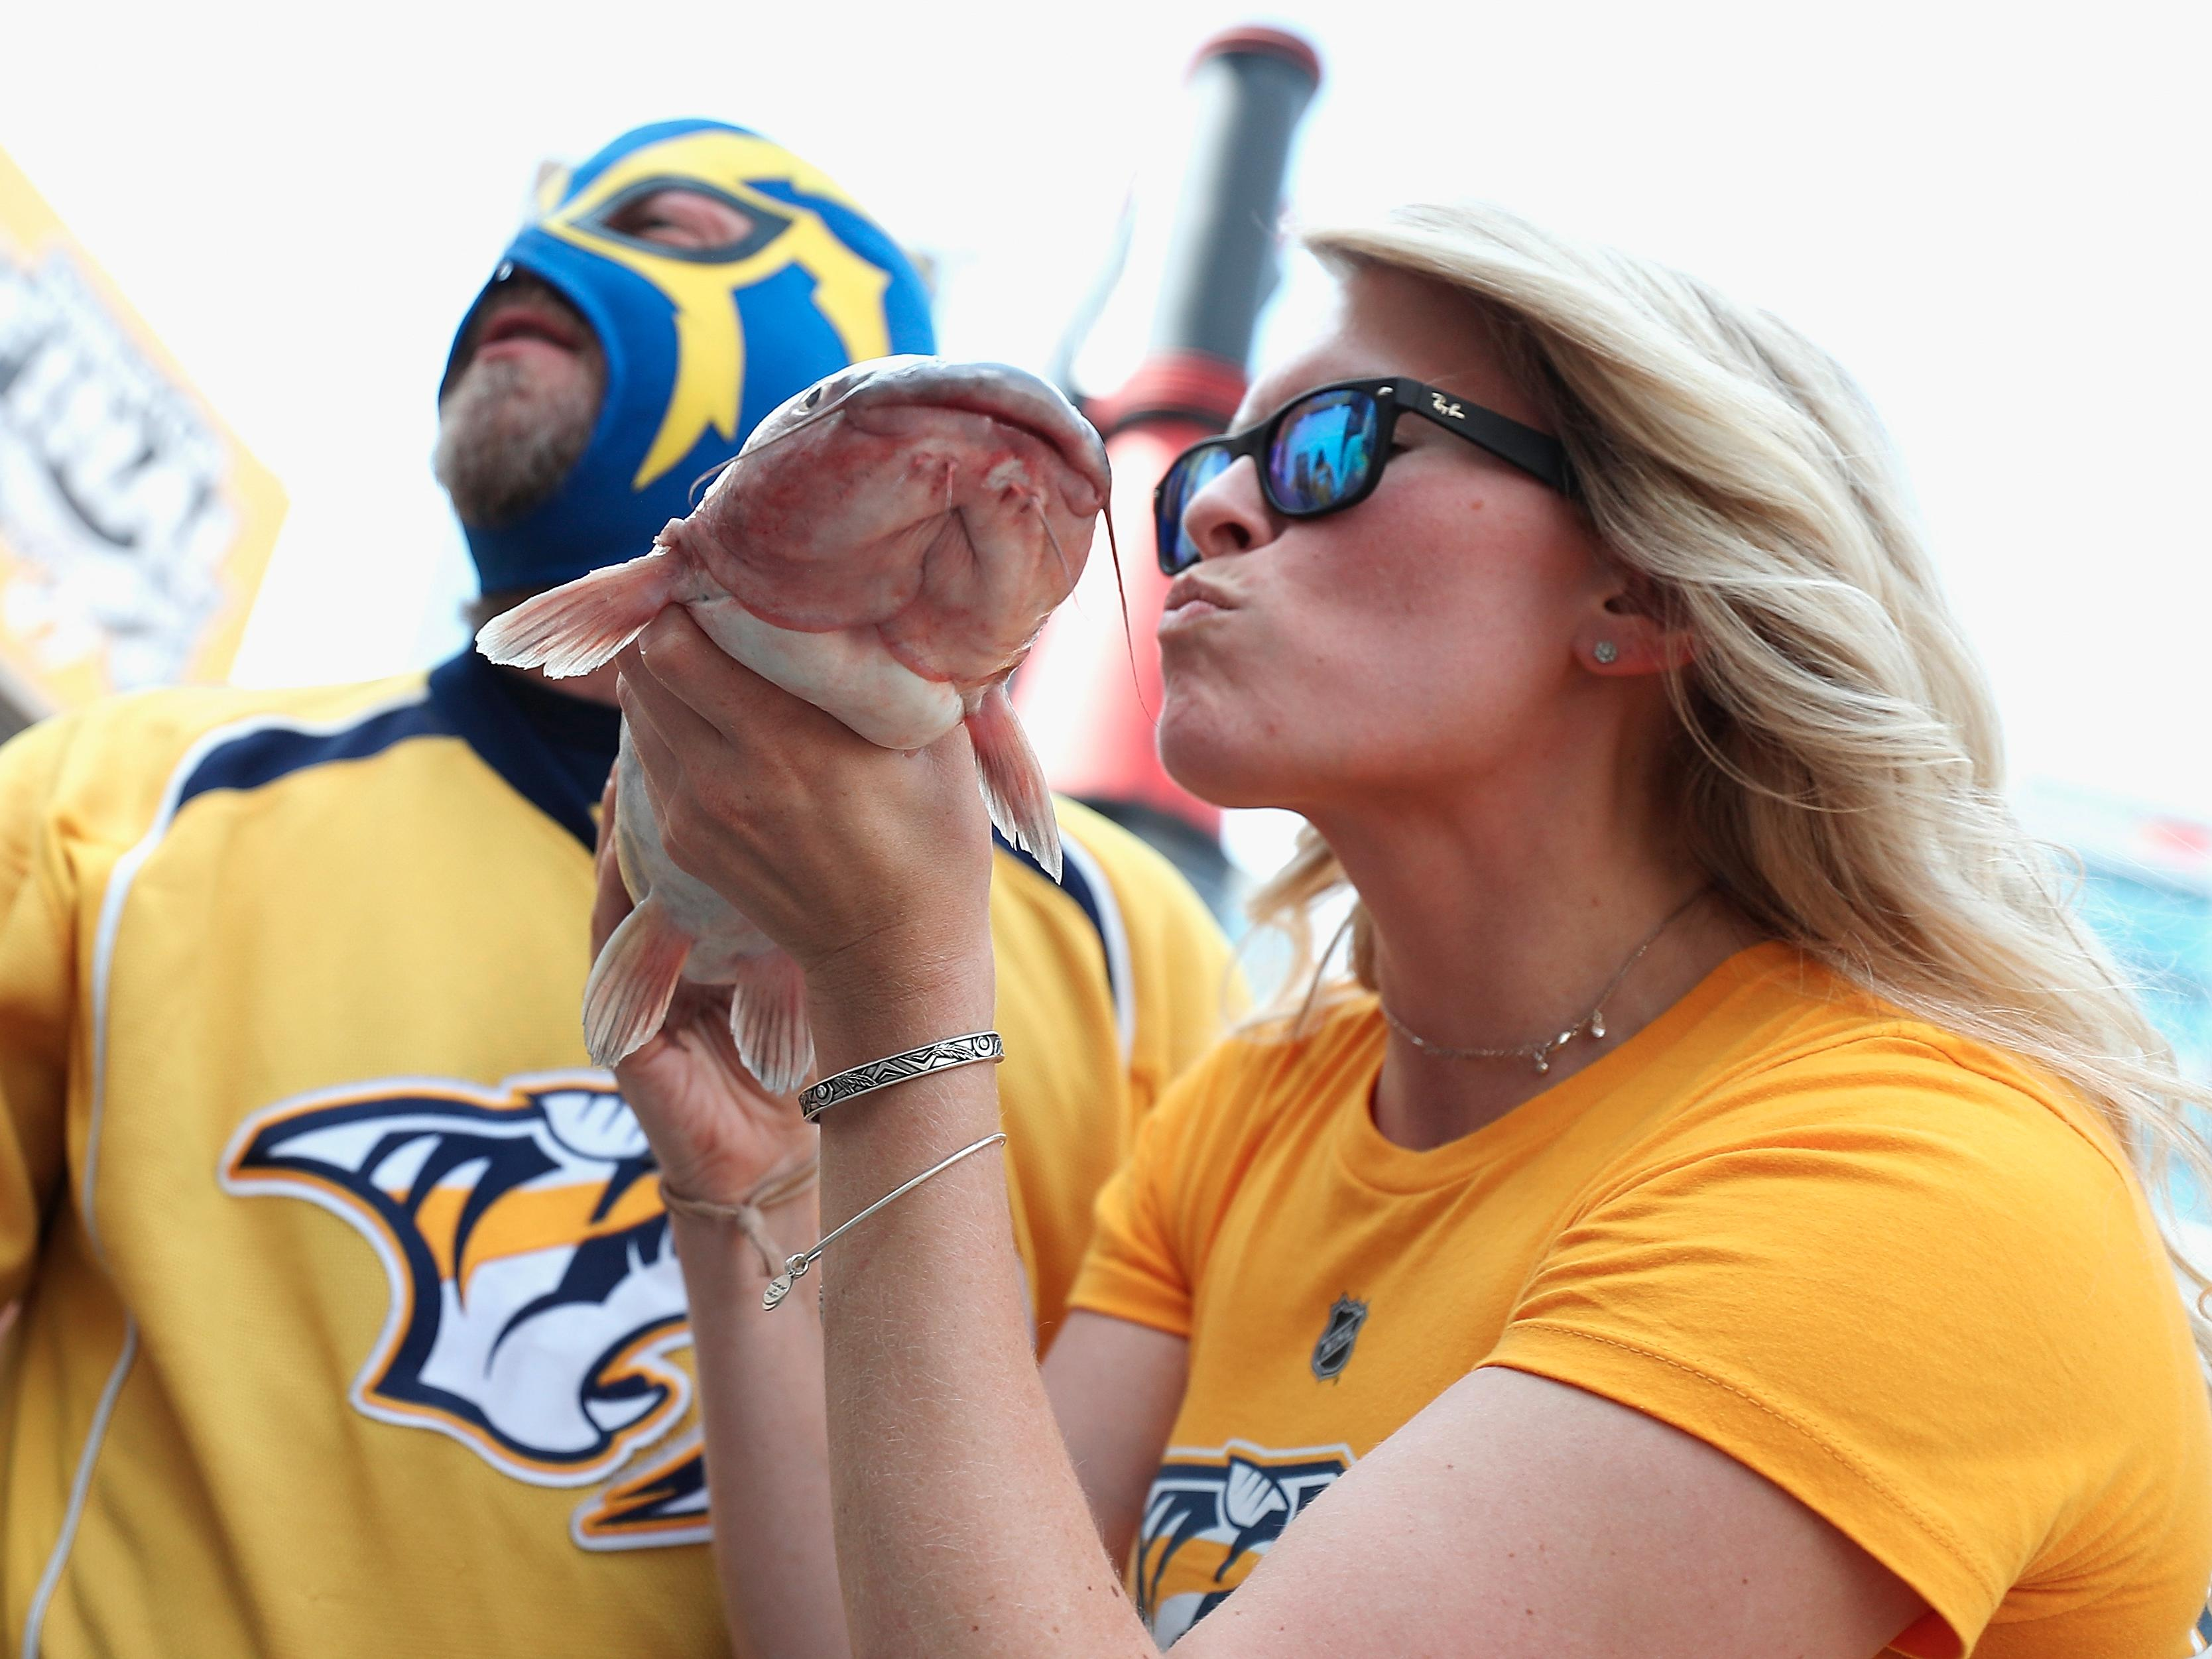 Predators_fans_brought_out_their-2d461b206de2bdfb1ab640103568544c.cf